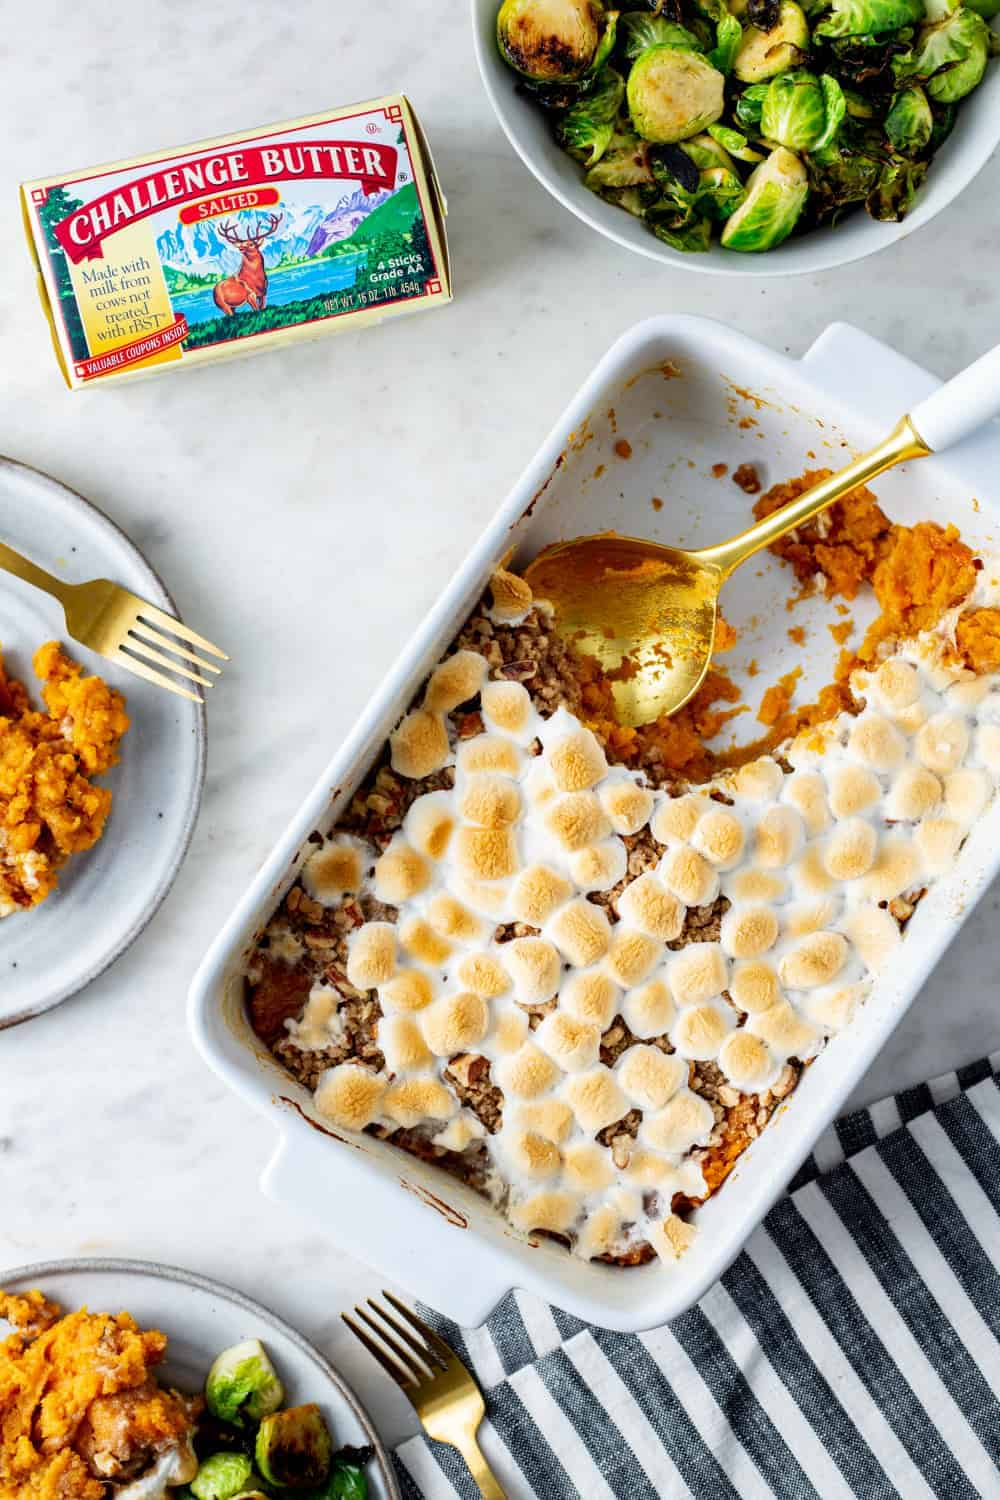 Spoon dishing out sweet potato casserole with streusel topping and sweet potatoes